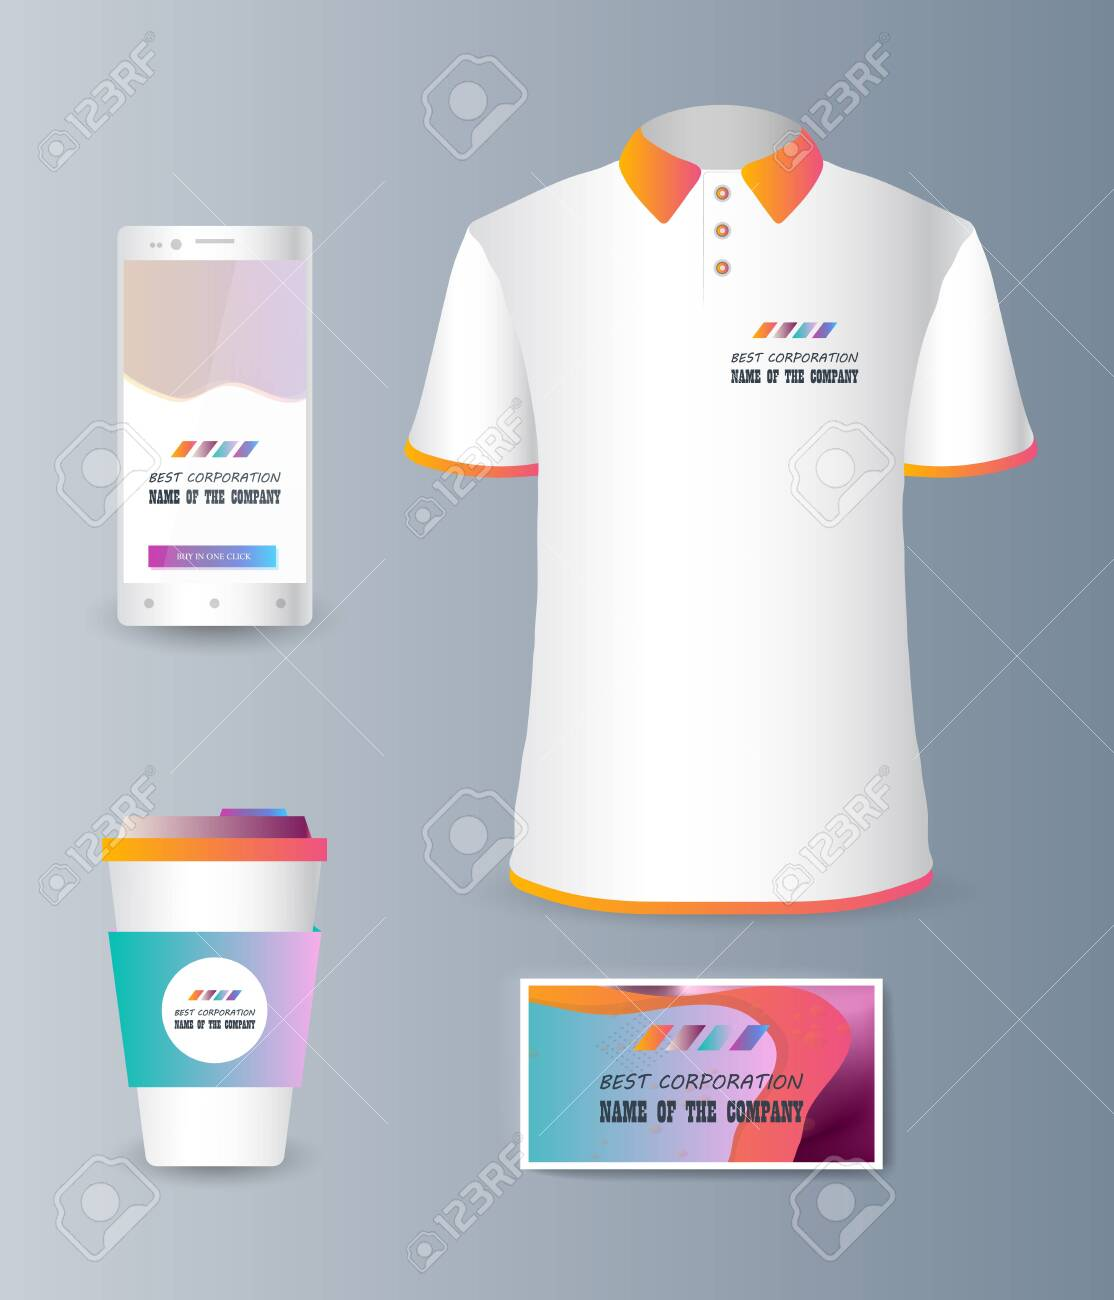 Presentation of a collection fashionable stylish items for marketing